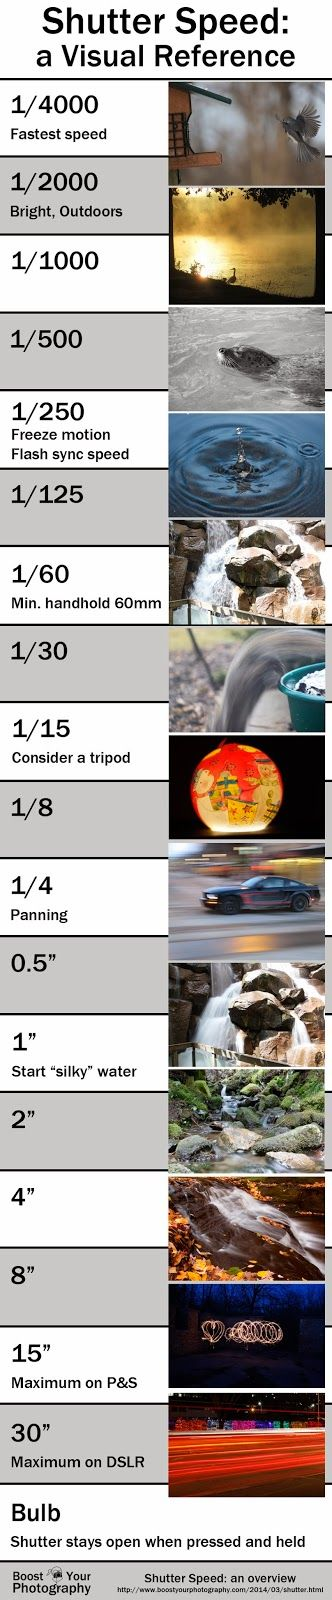 Shutter Speed: an overview | Boost Your #Photography